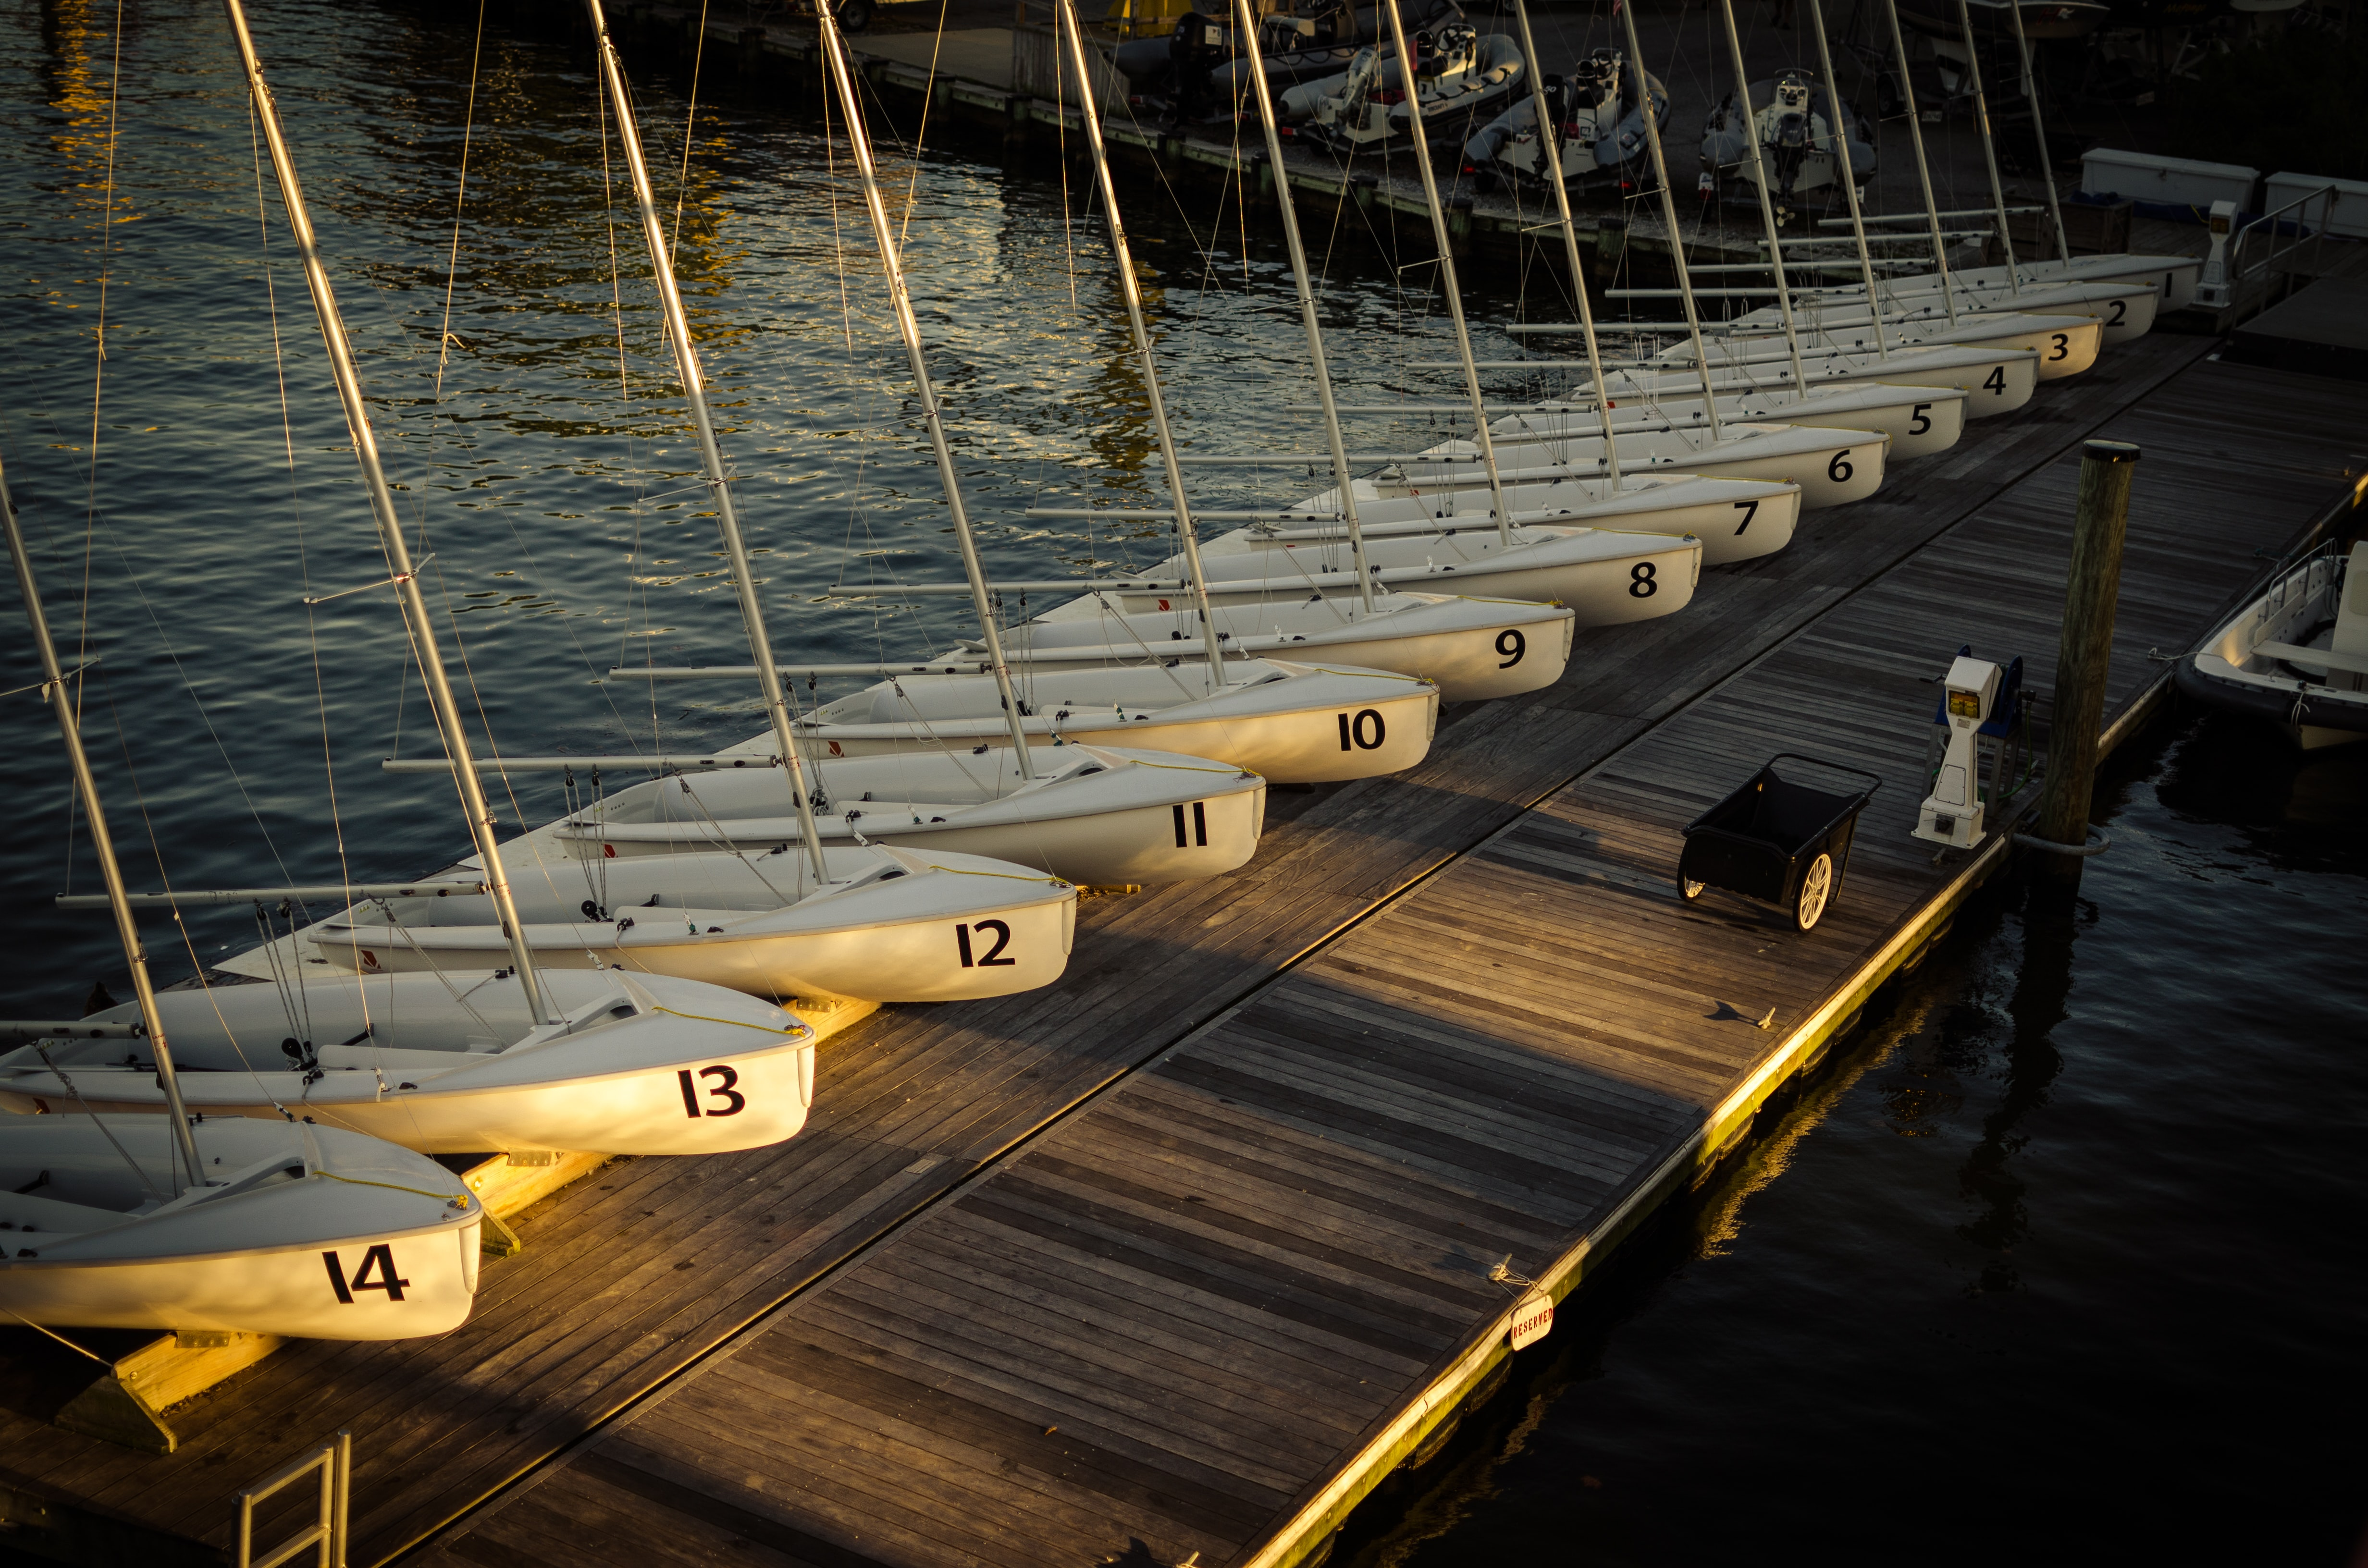 high-angle view of lined white boats on wooden bridge over body of water